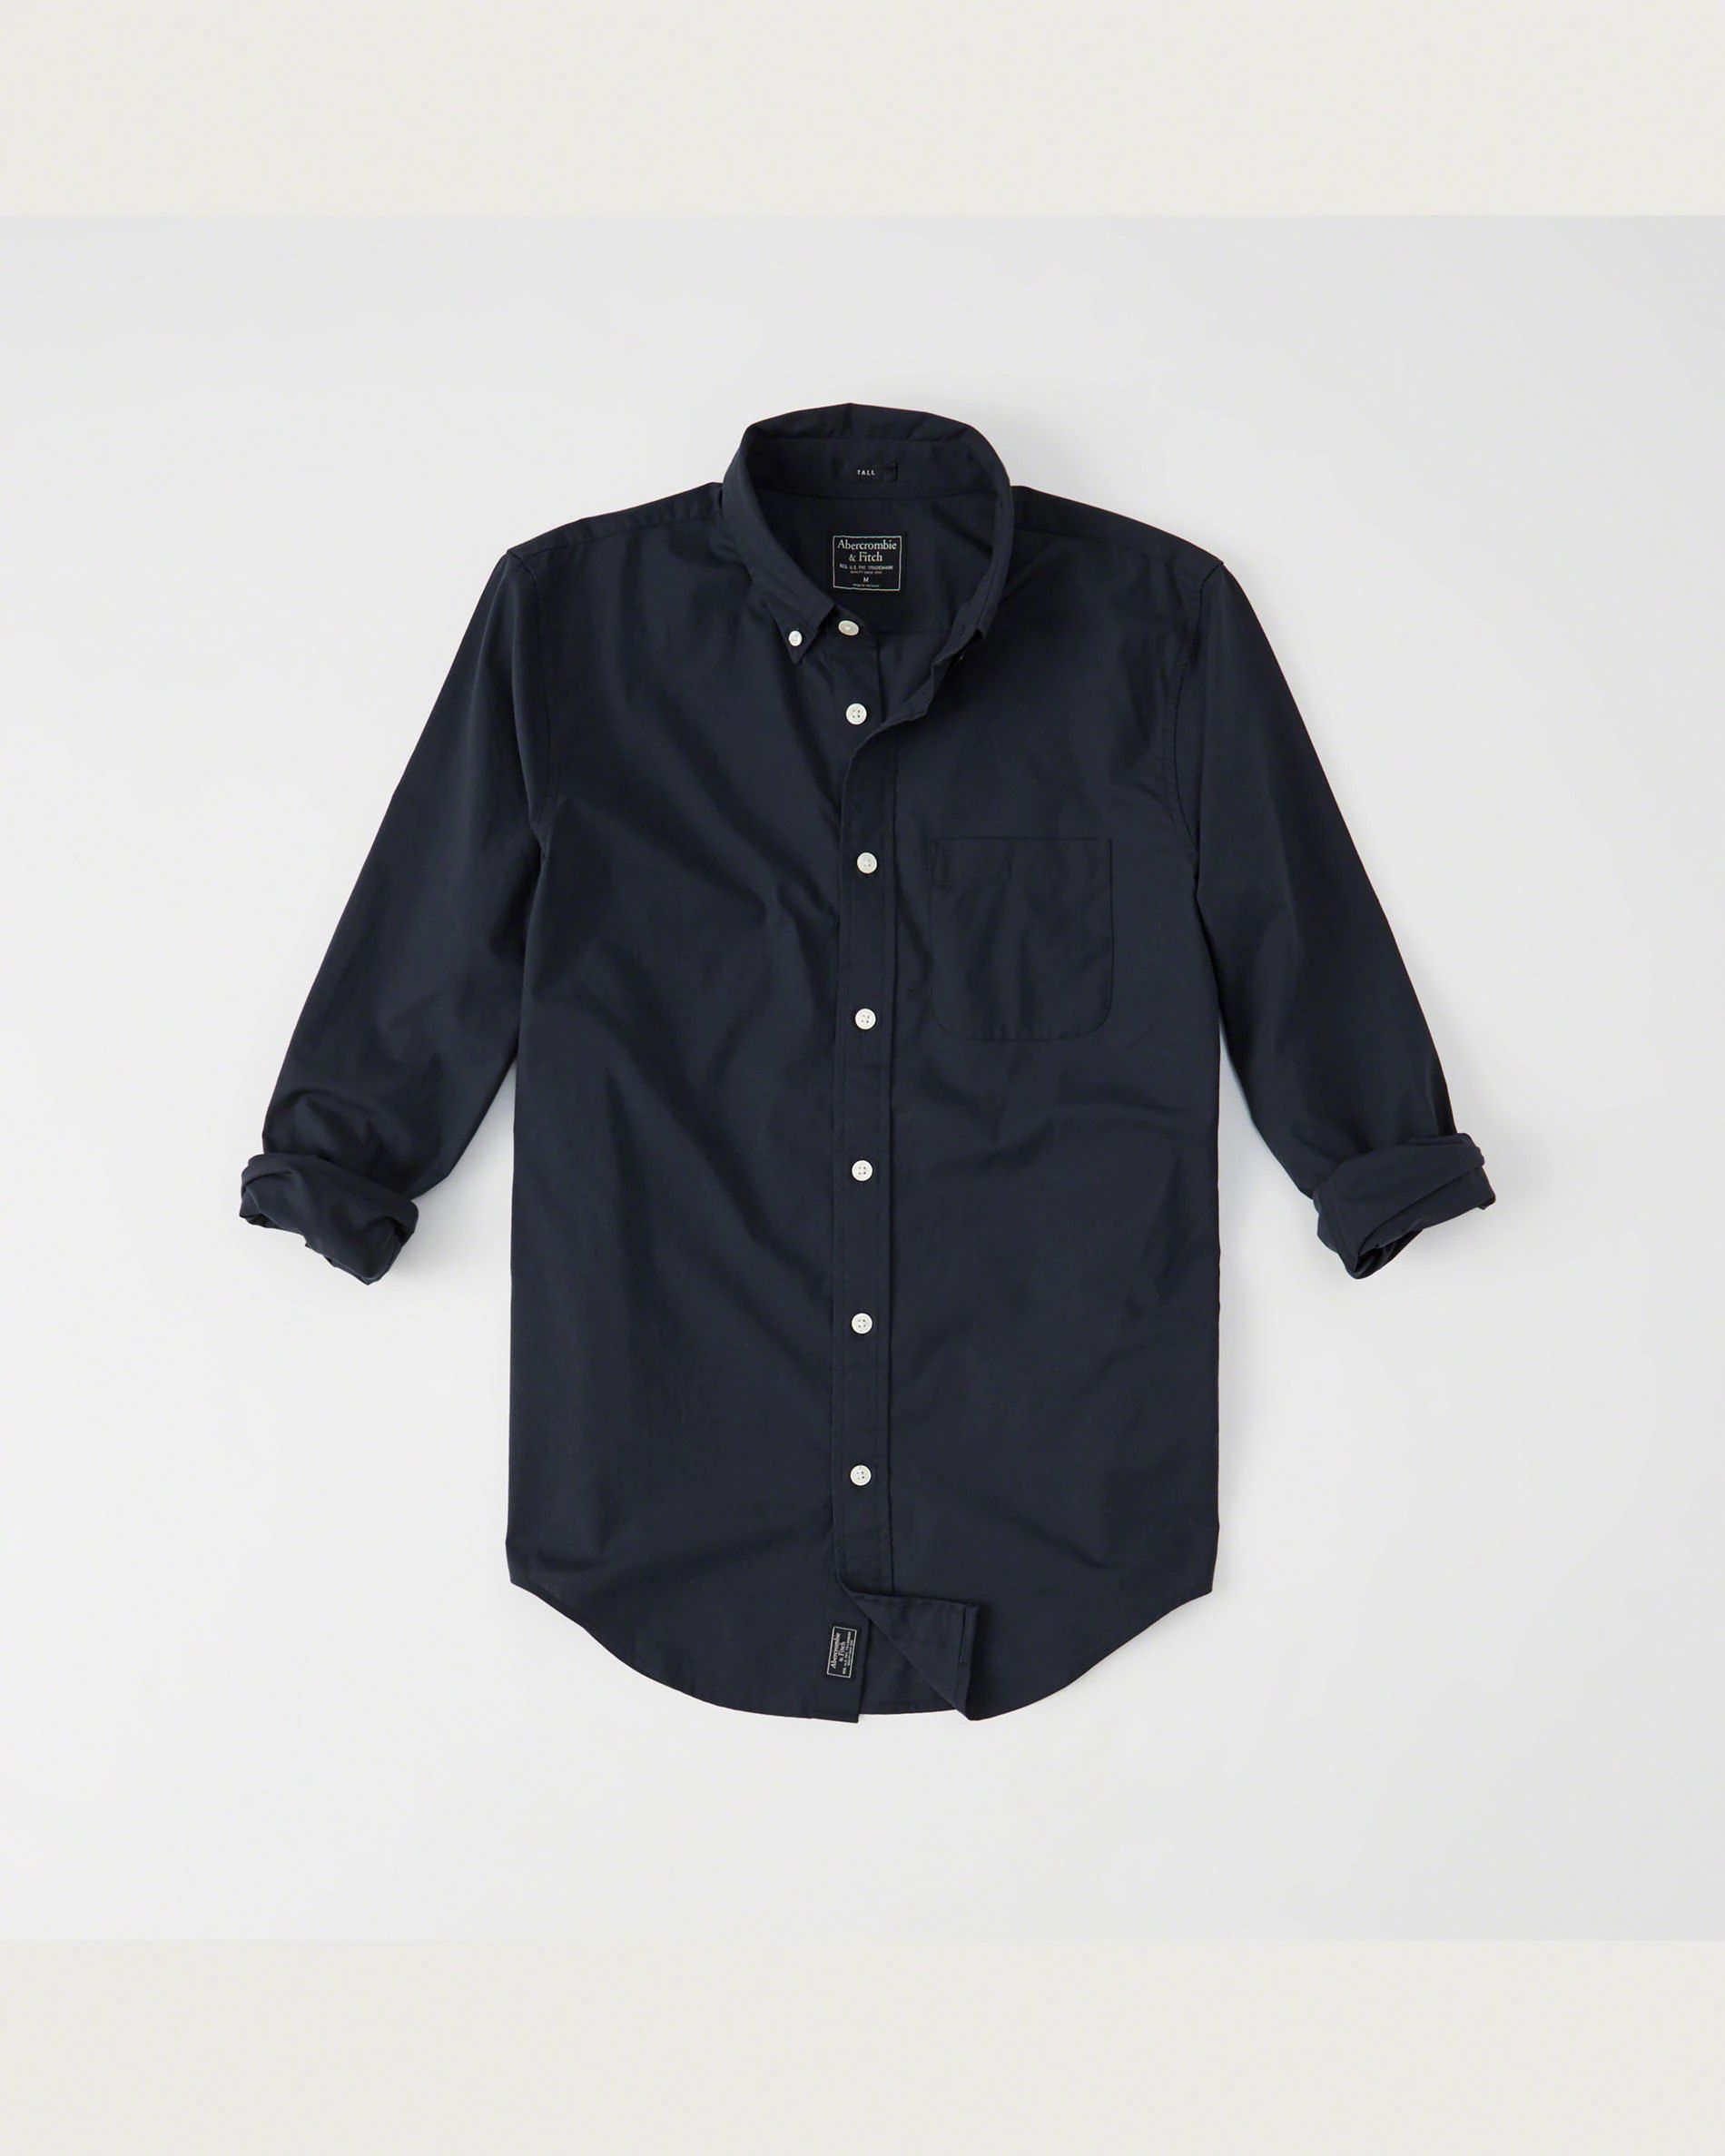 The Best Oxford Shirts Of 2019